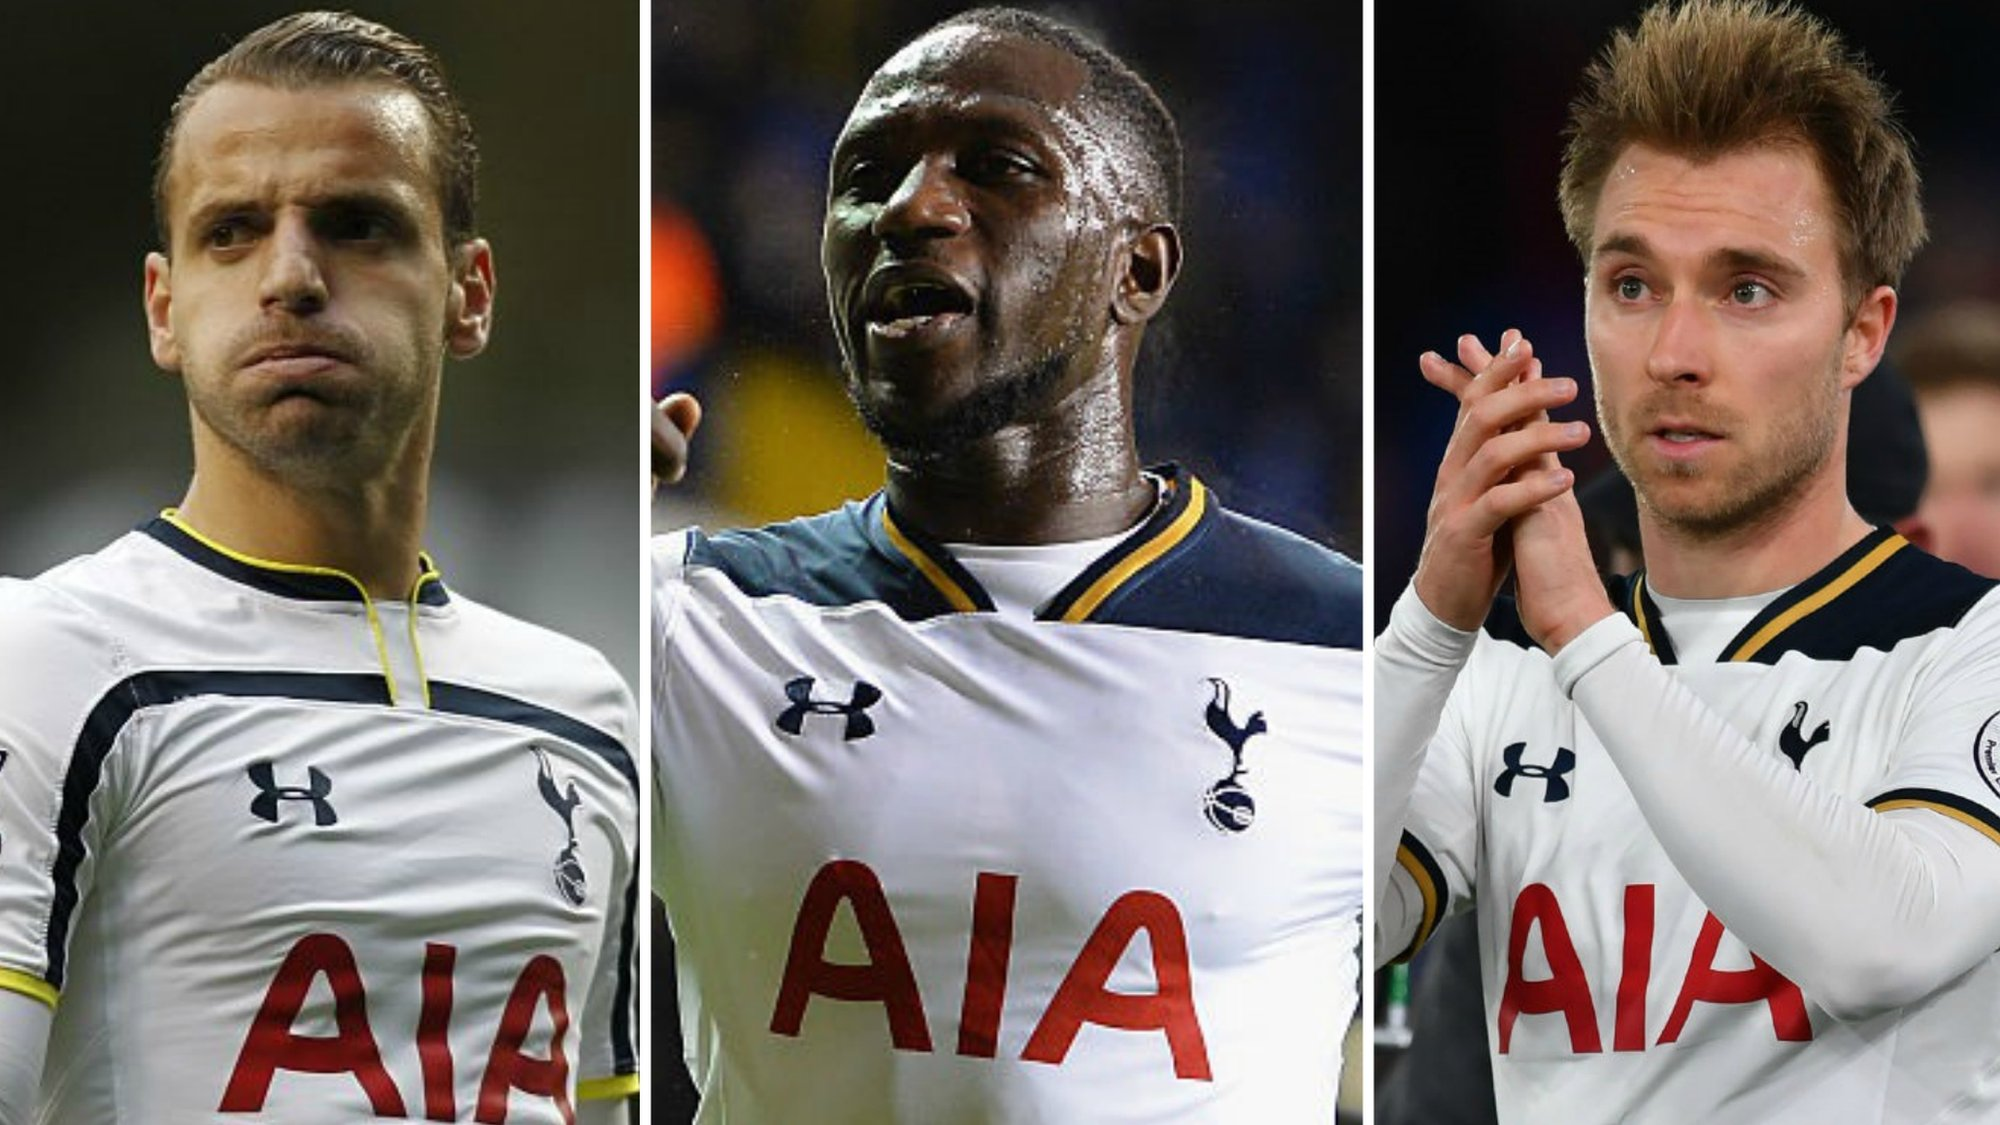 Leaving it late or trusting in youth? When will Spurs make their move?